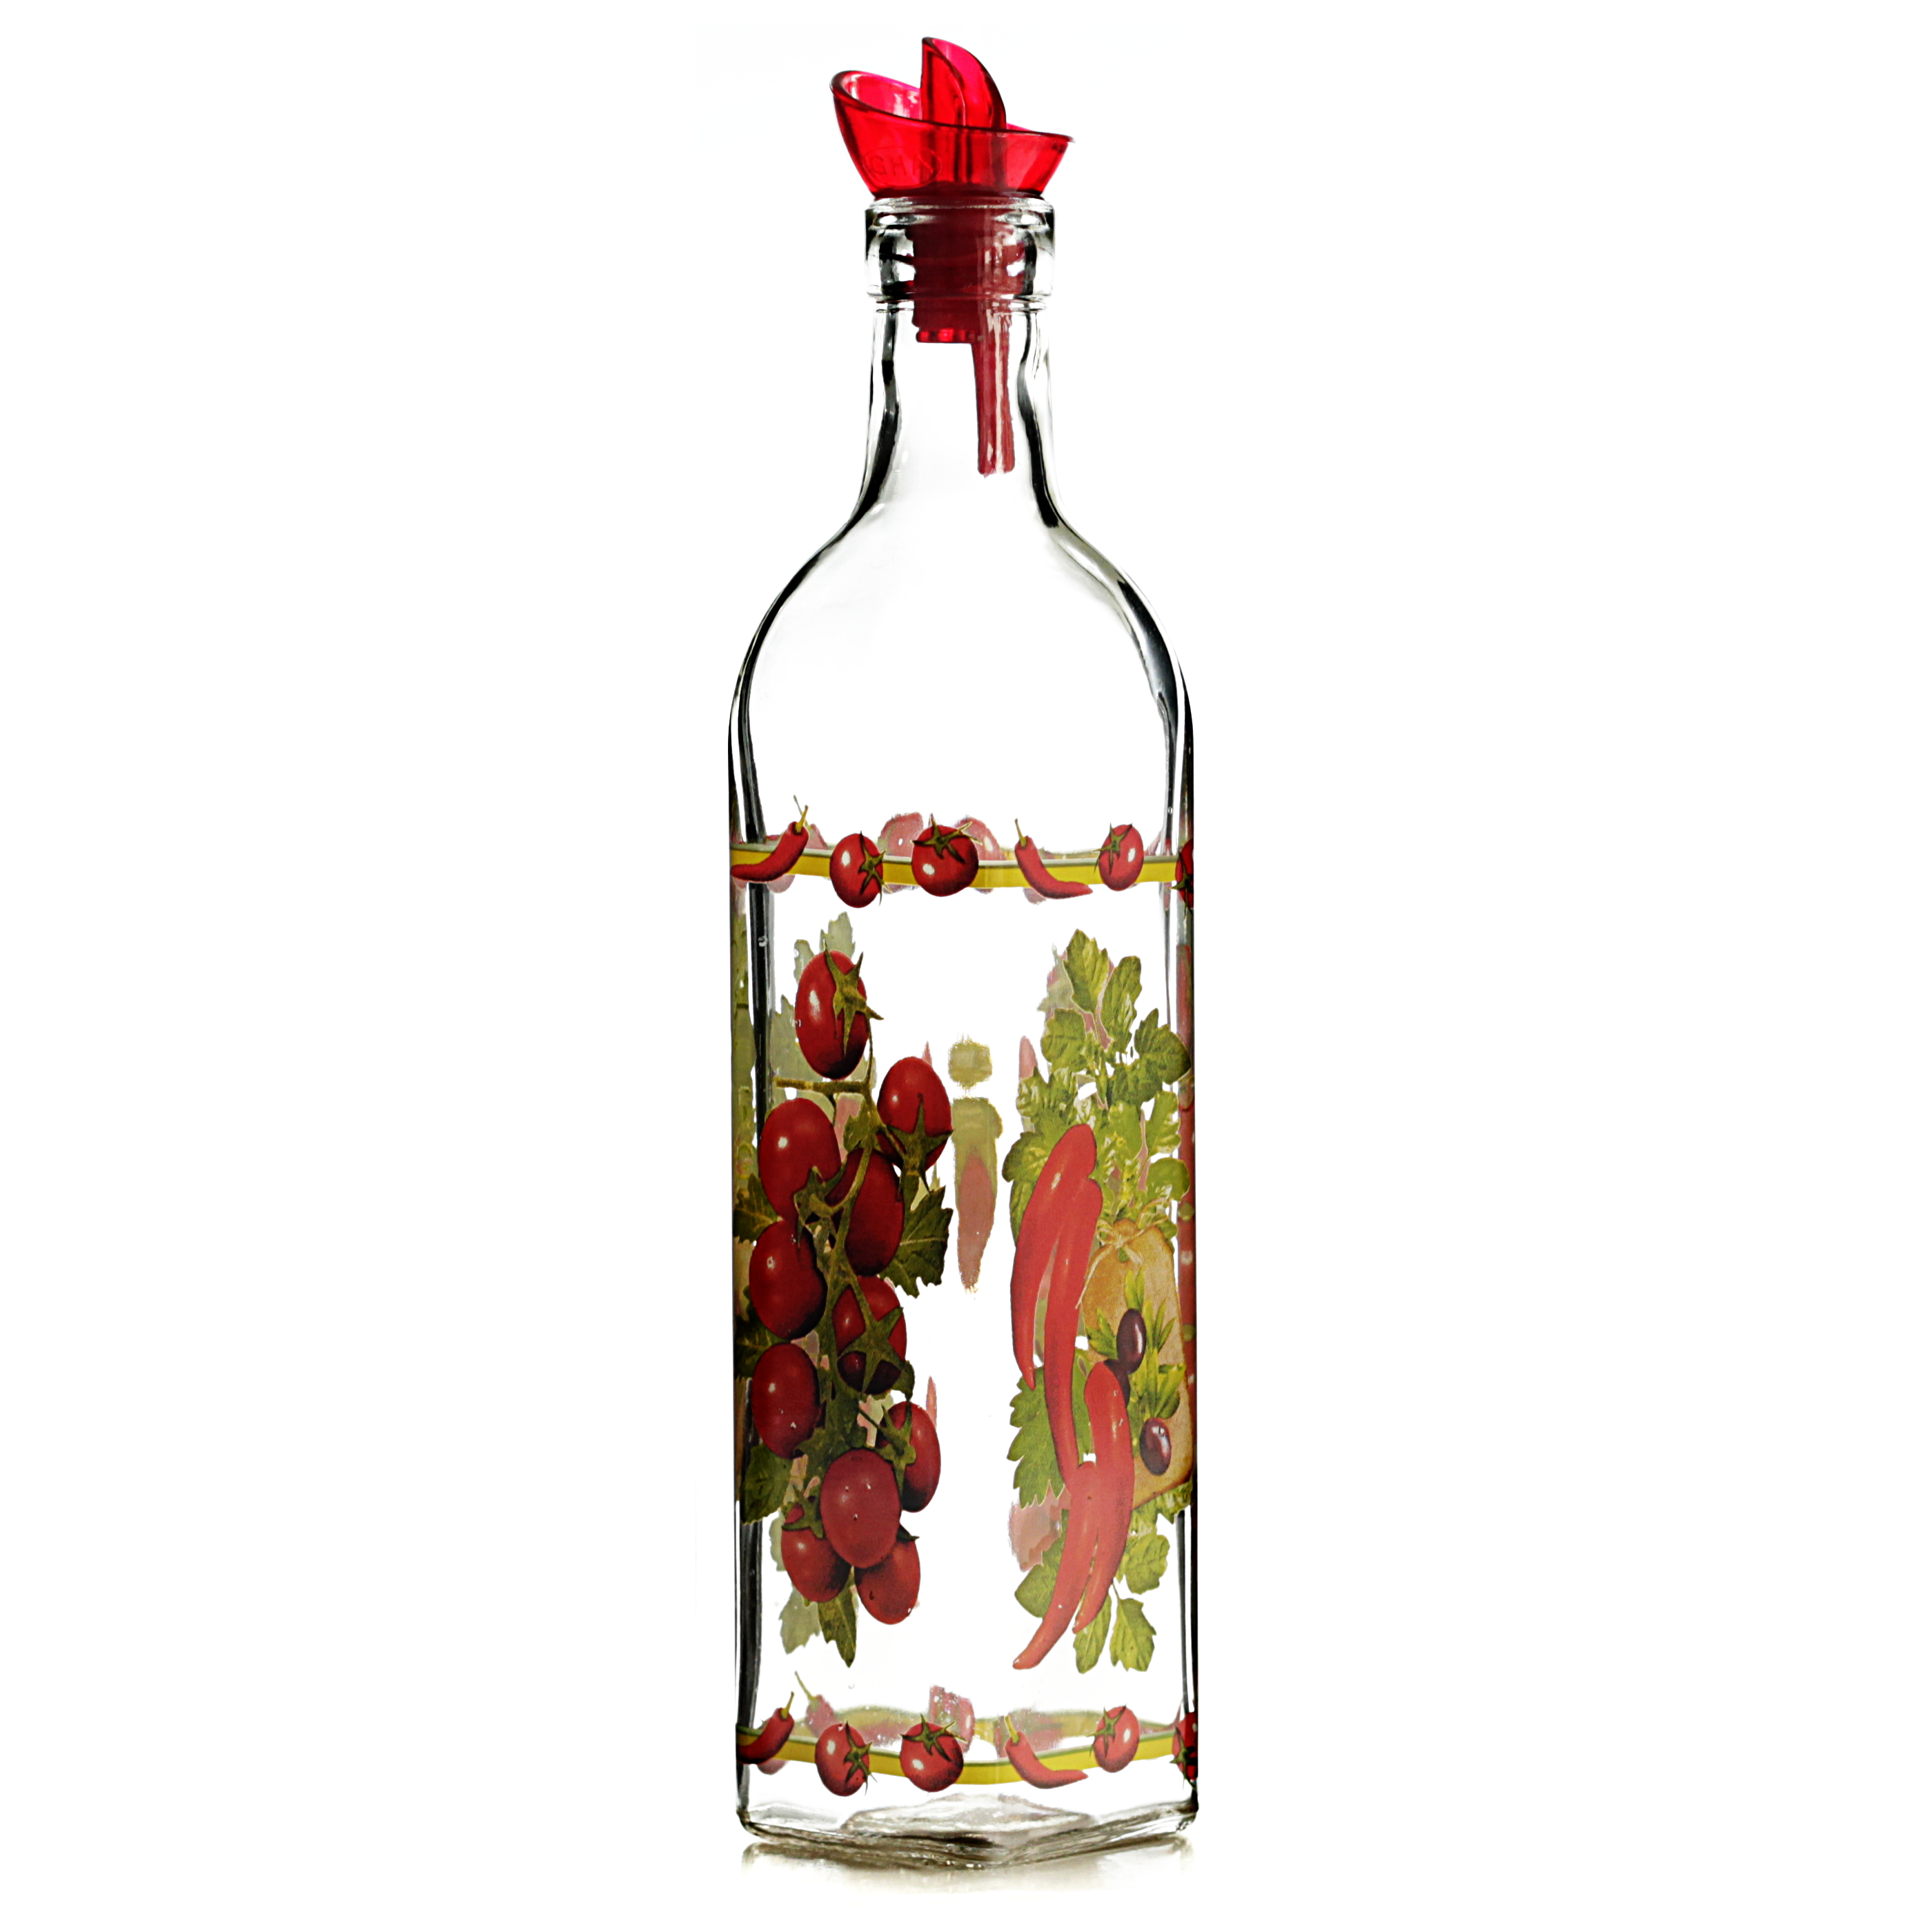 Grant Howard Ergo Pourer Country Veggies Glass Oil and Vinegar 16 Ounce Cruet